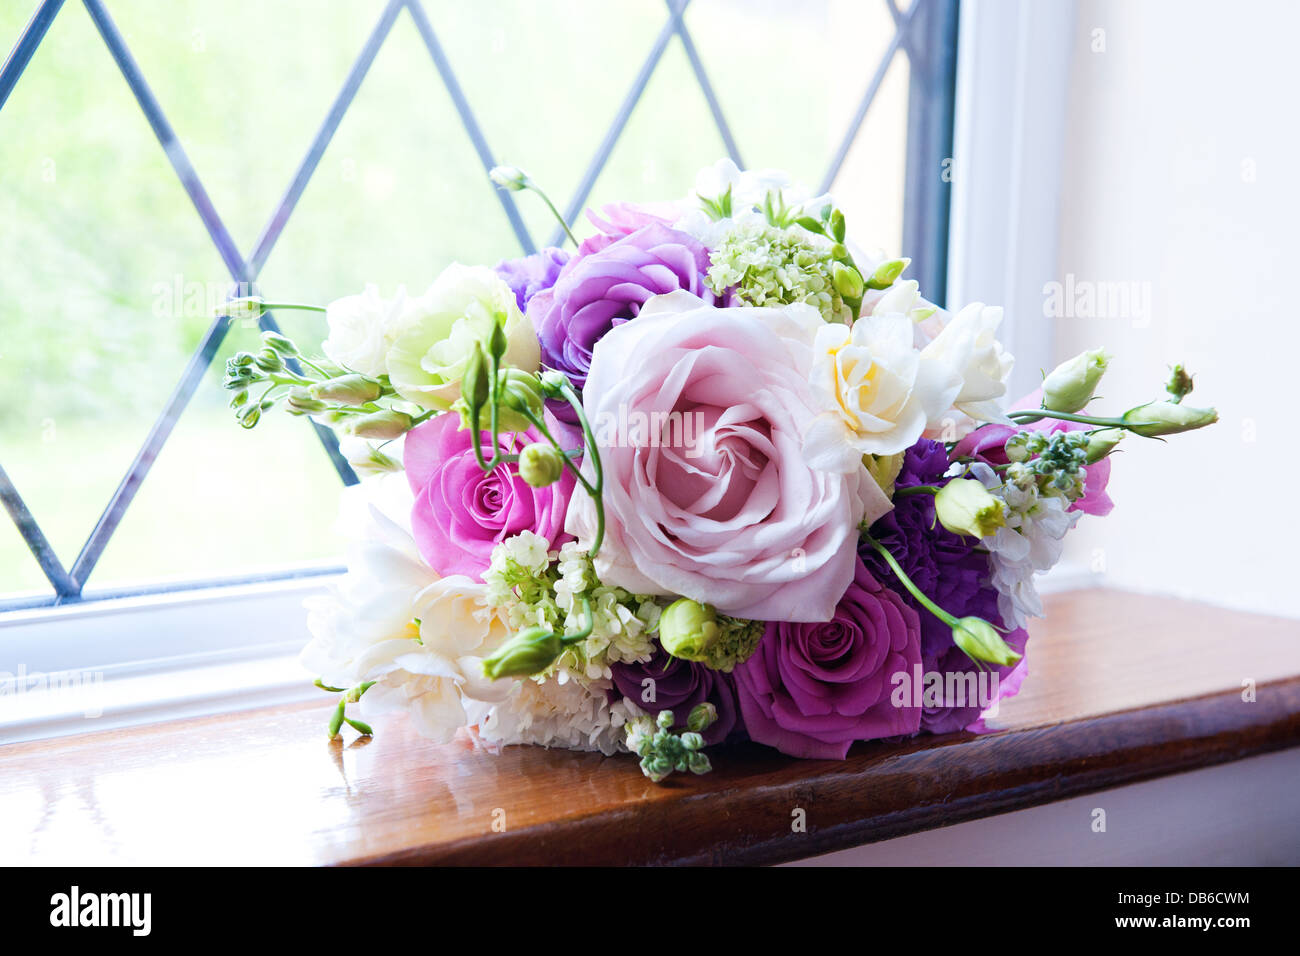 vibrant purple pink white and pastel pink rose wedding flower stock photo royalty free image. Black Bedroom Furniture Sets. Home Design Ideas